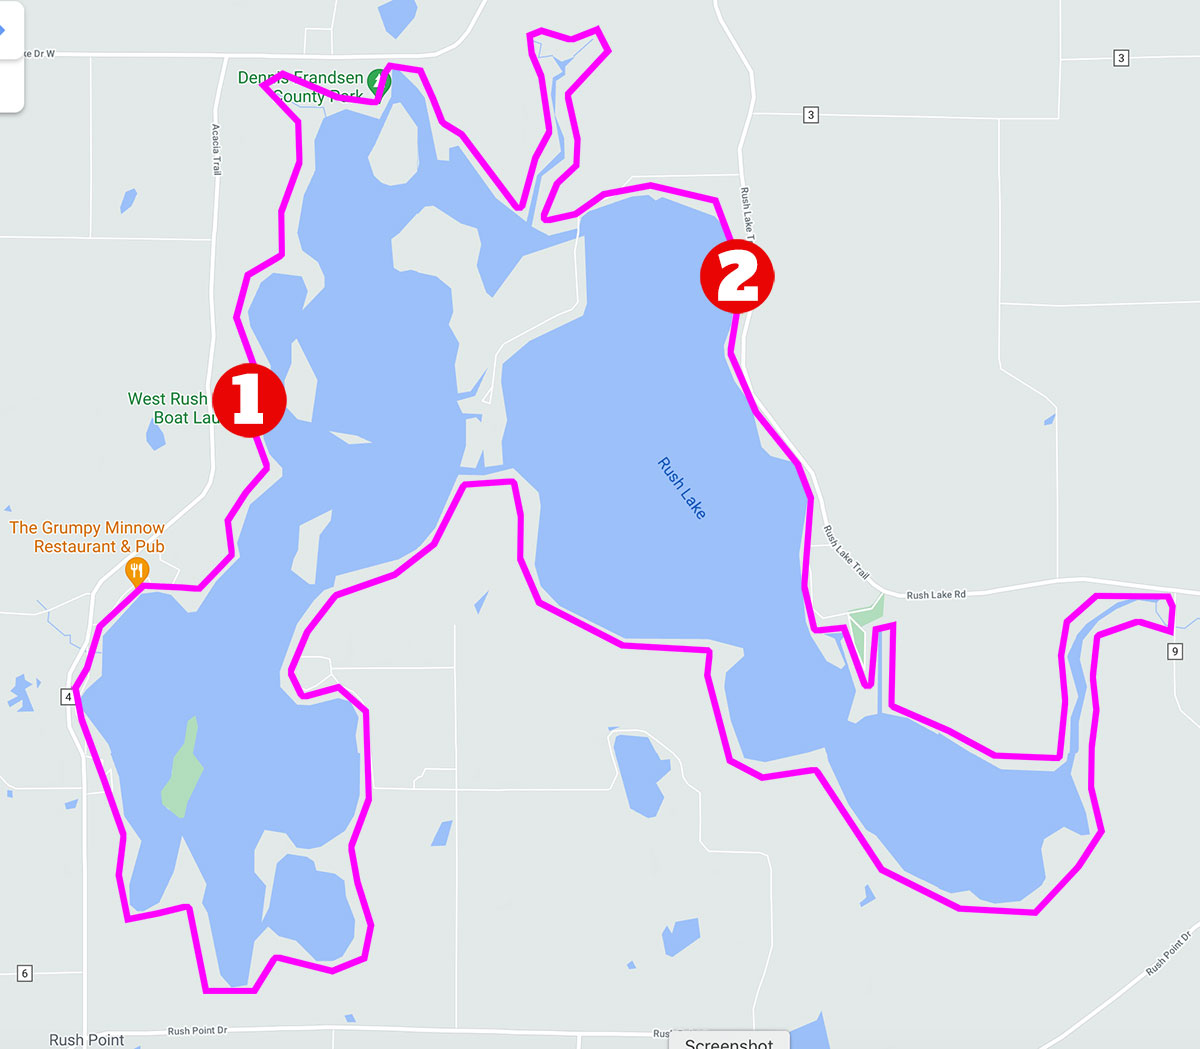 East And West Rush Lake Launch Points